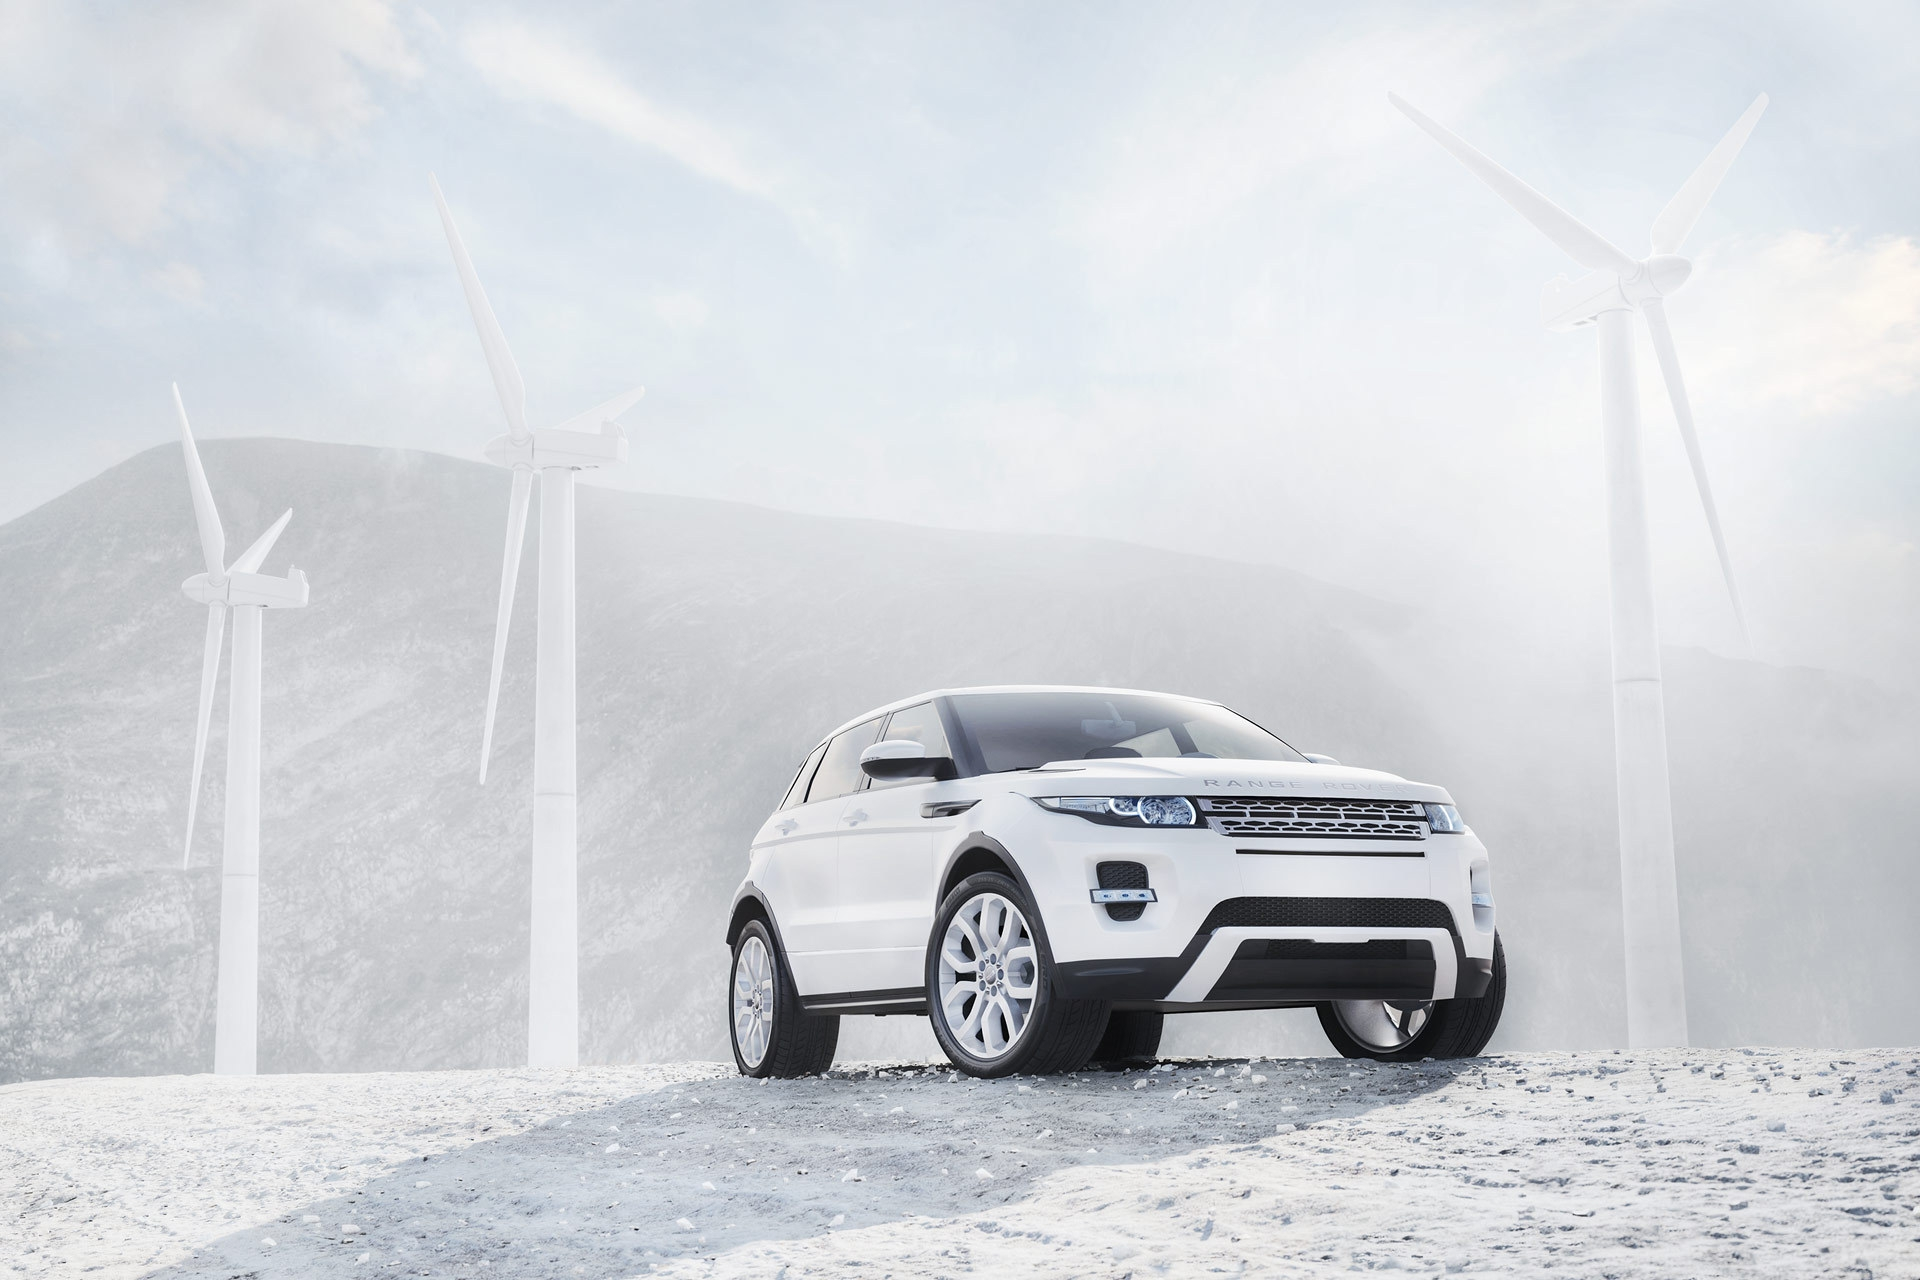 113774 download wallpaper Cars, Range Rover, Wind Turbines, Windmills, Suv, Parquetnik, Jeep, Land Rover screensavers and pictures for free